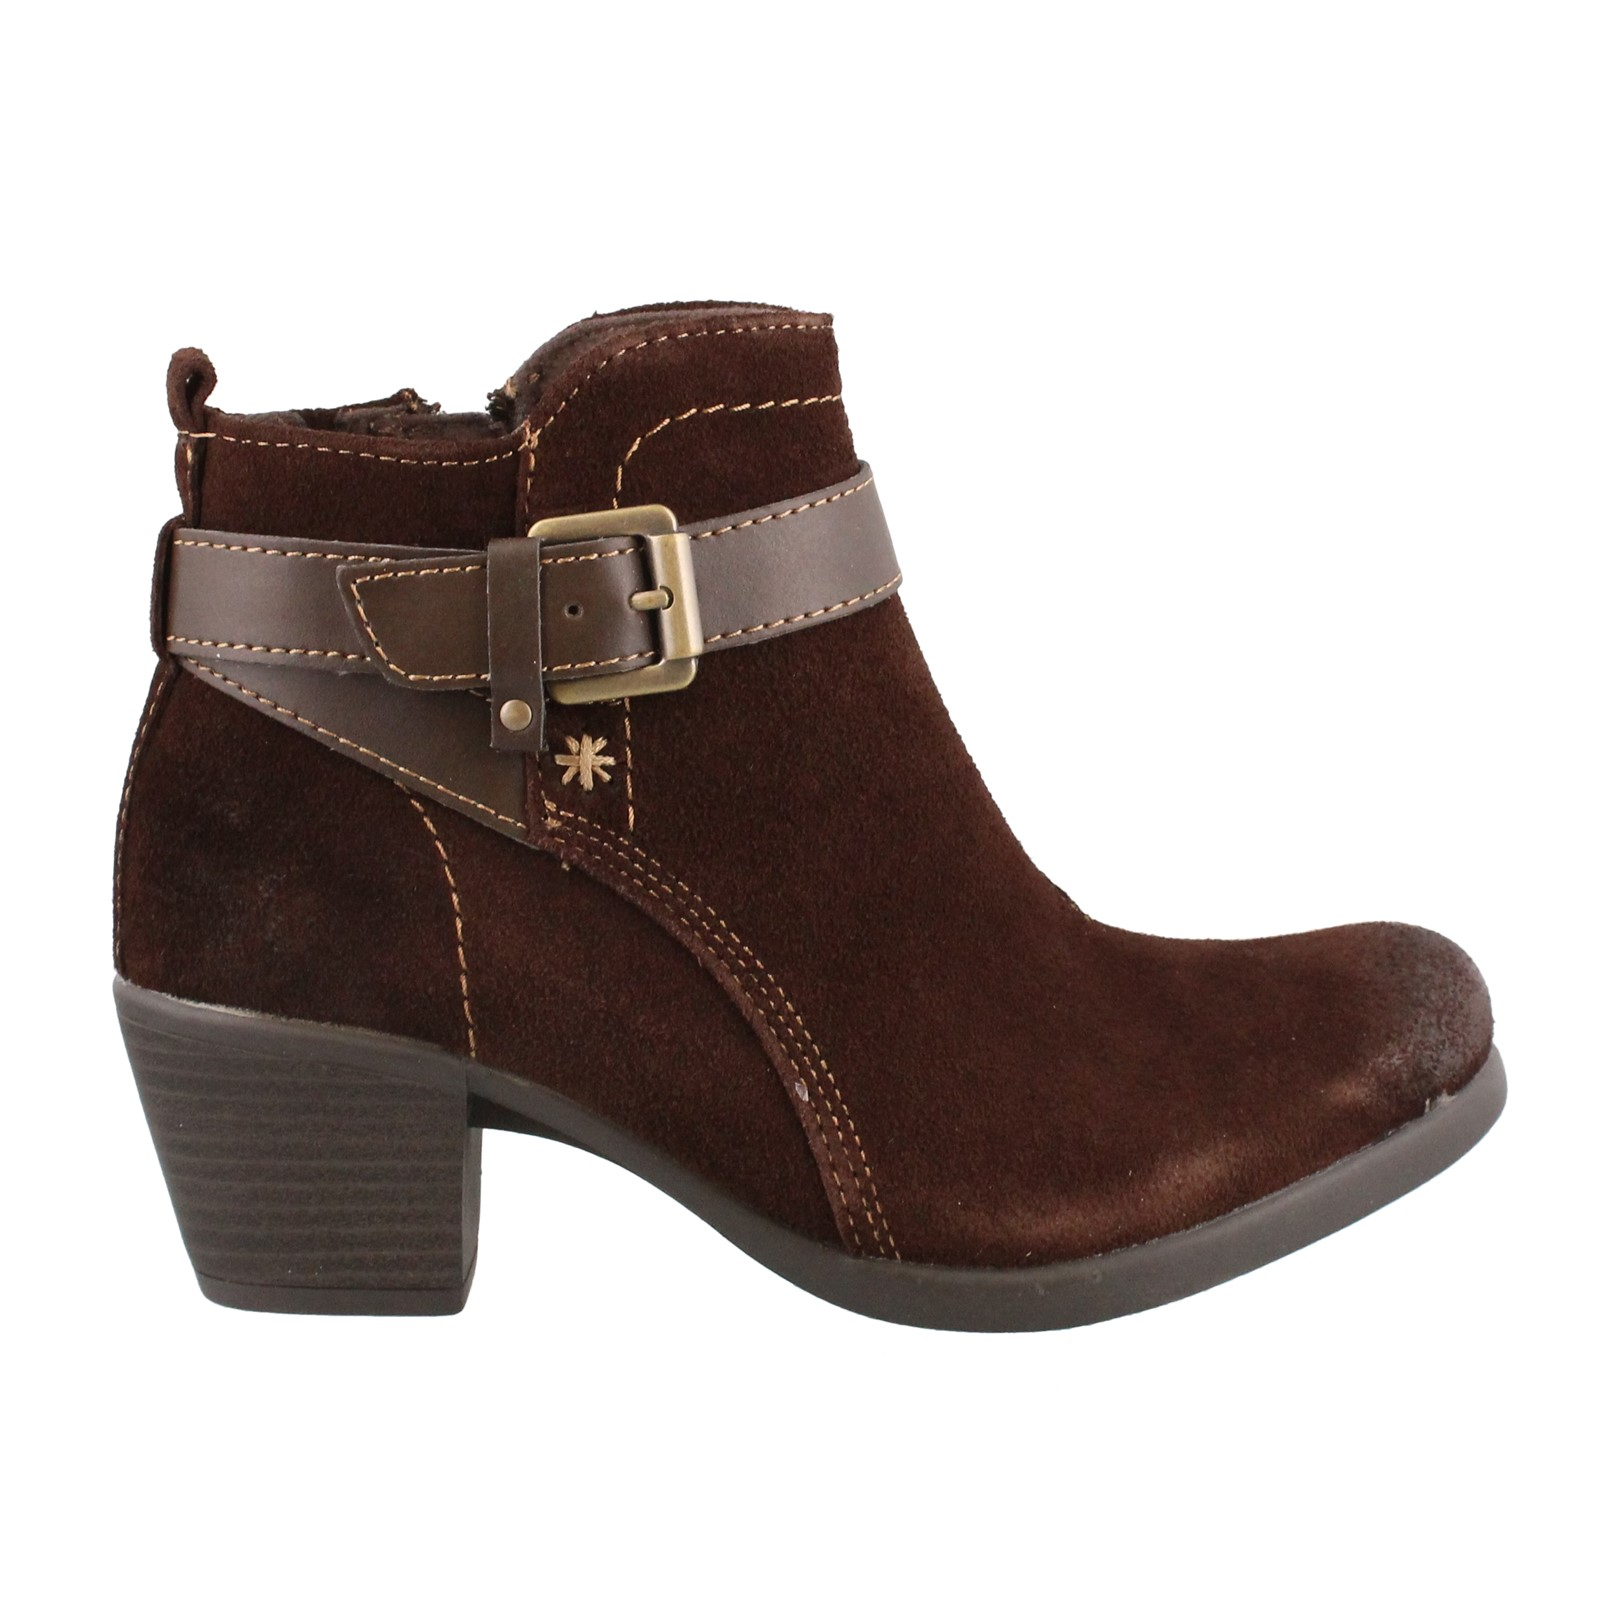 Women's Earth Origins, Kaia Ankle Boots